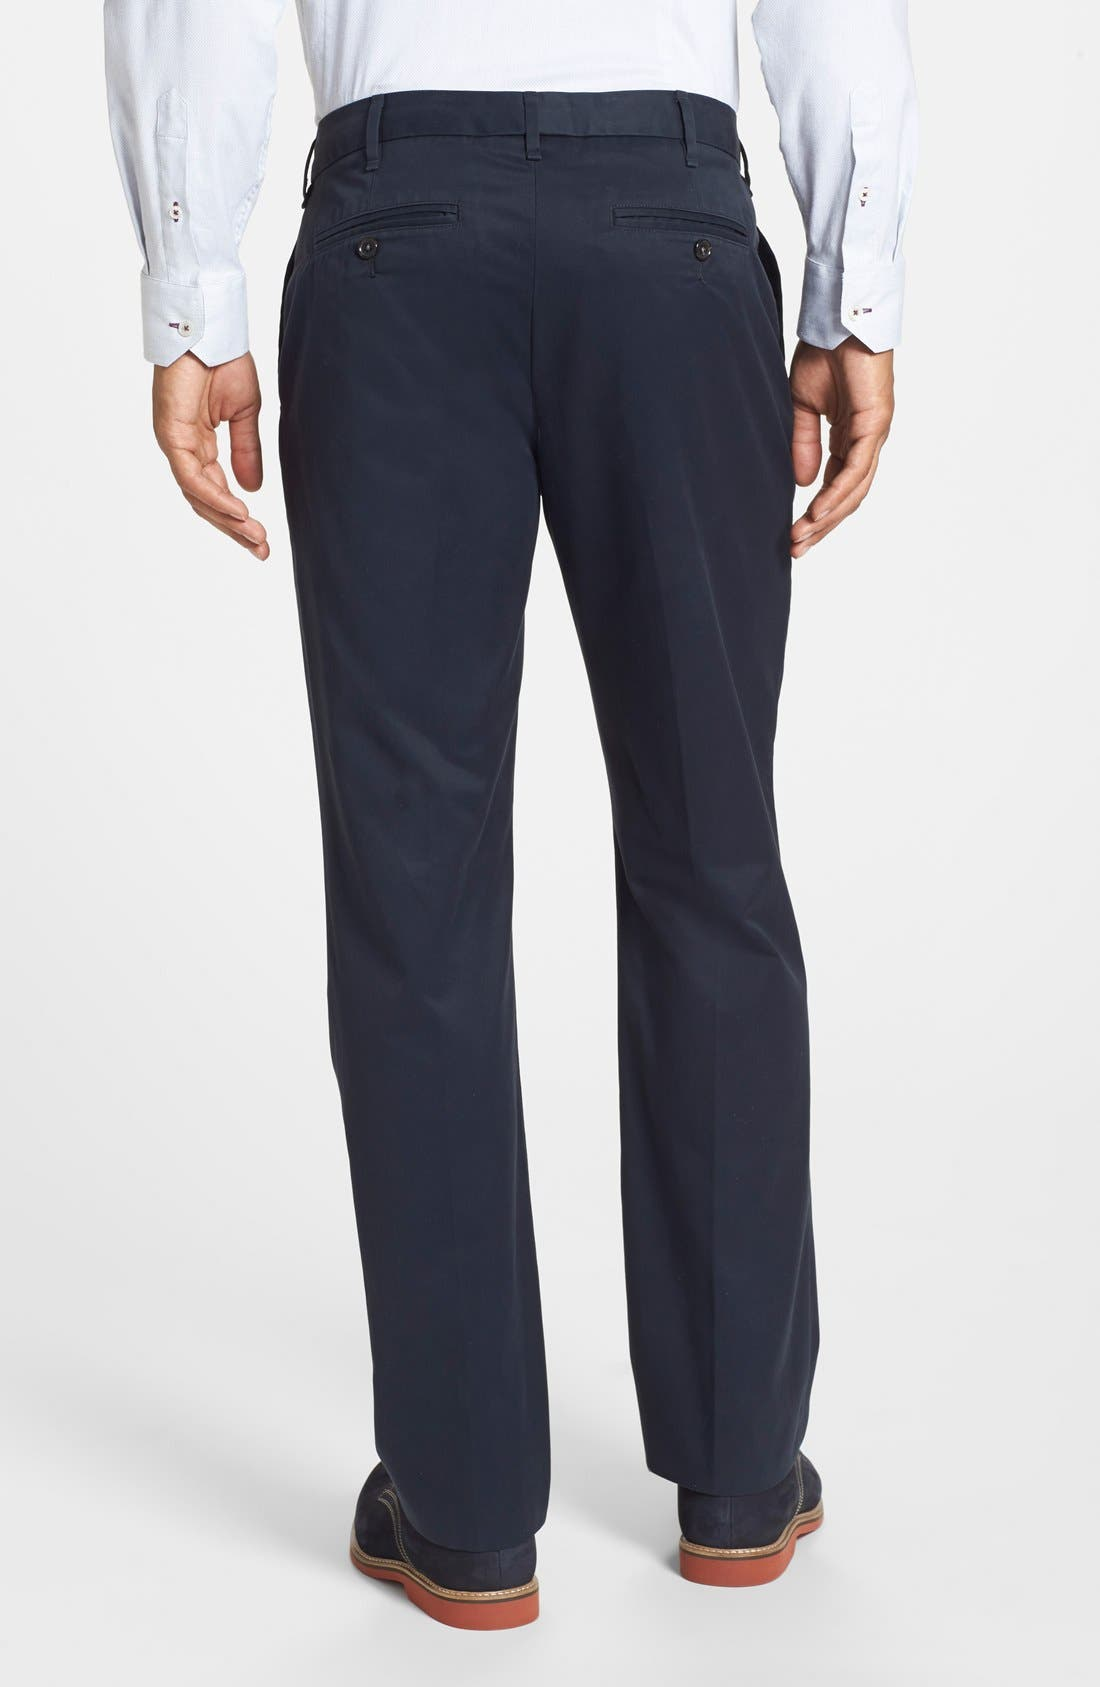 PLUS Smart Trousers In Navy - Navy Duke I9OqpxqDM